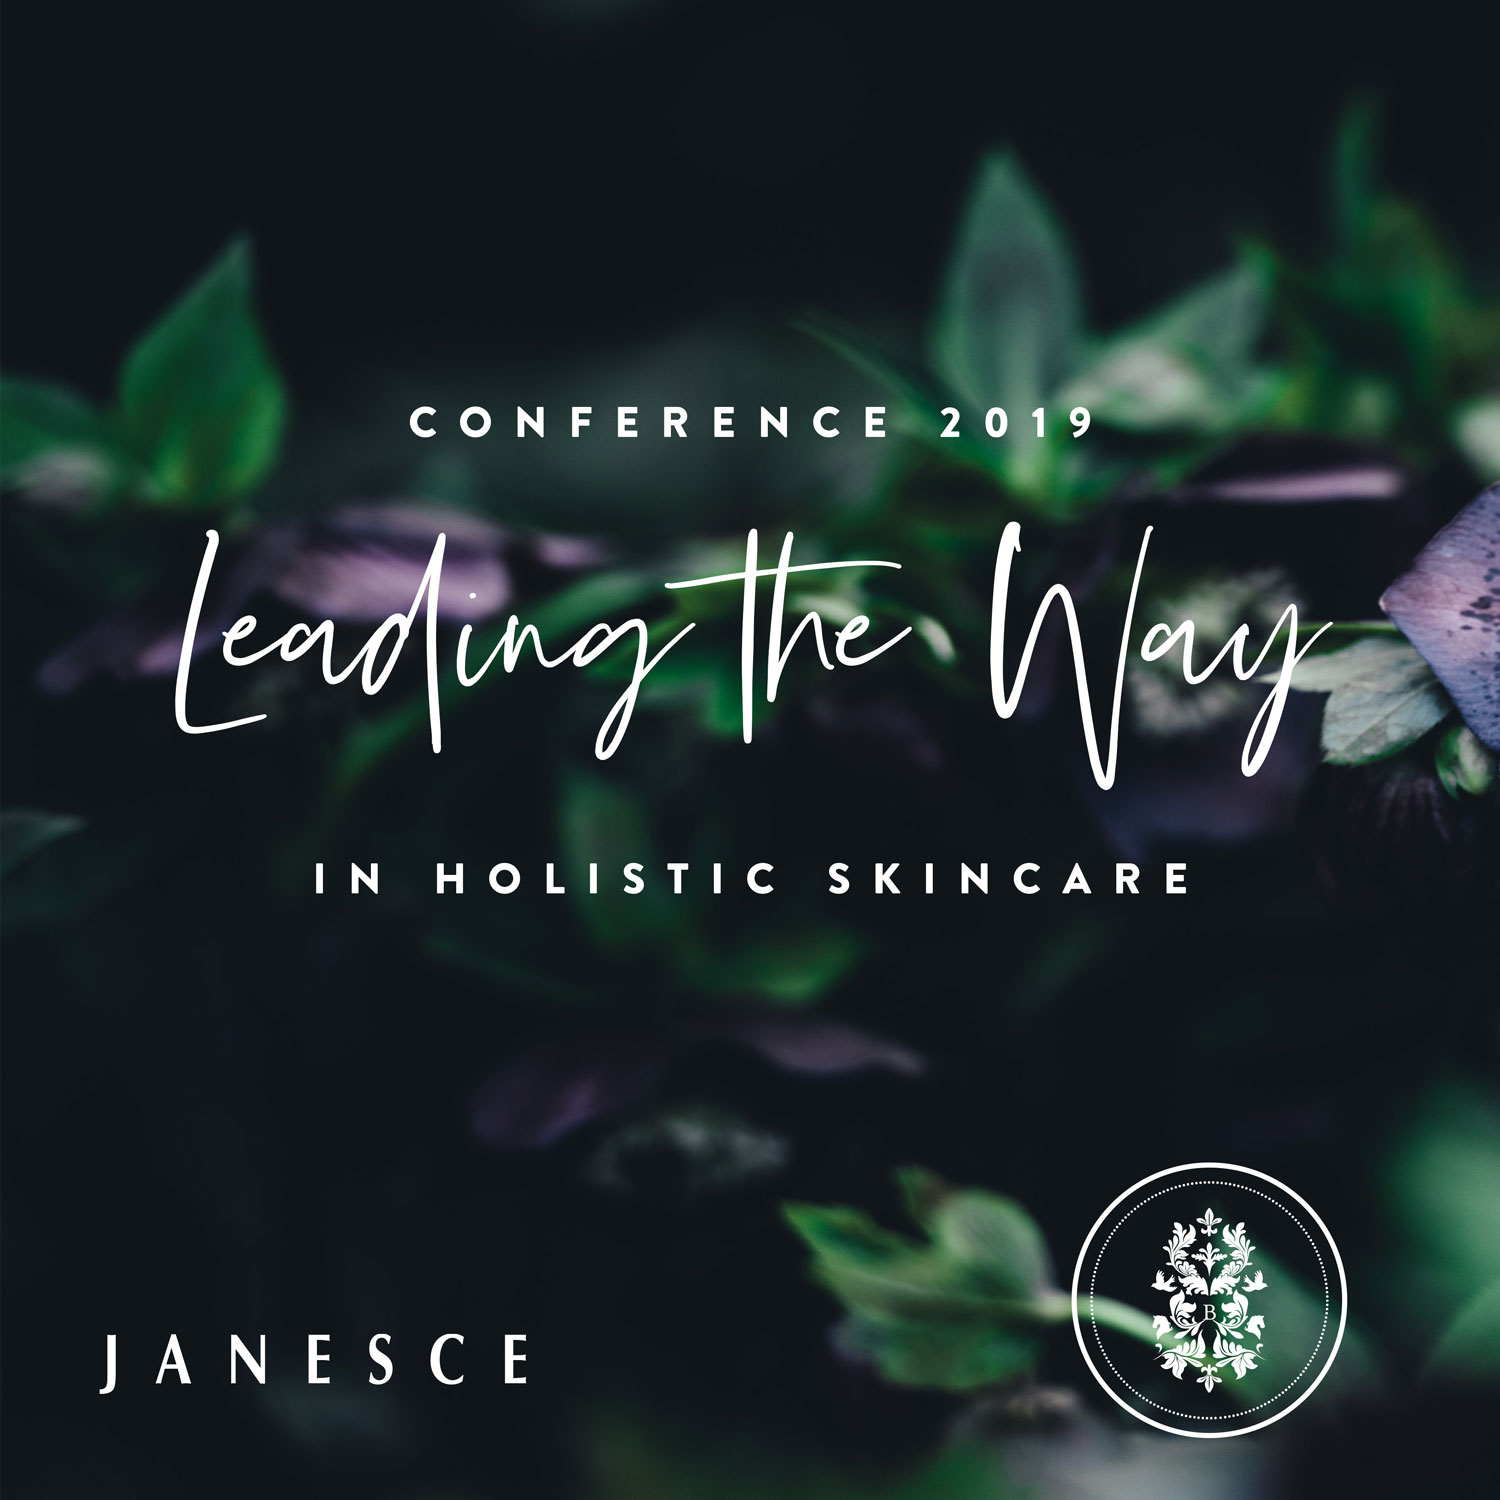 SAVE THE DATE! Janesce/Bestow Conference 2019